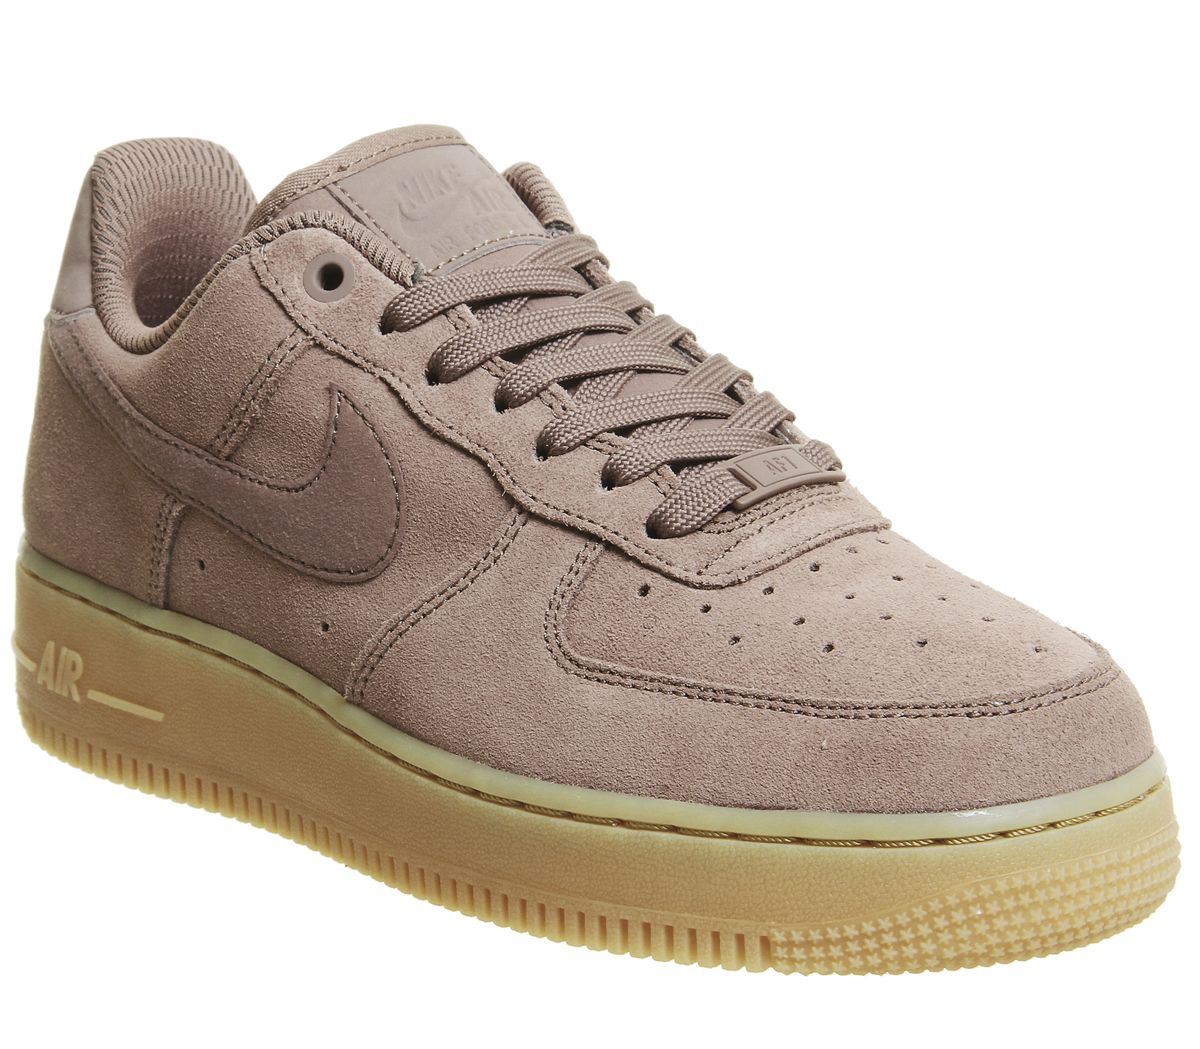 5d1cb748a4 Nike Air Force 1 07 Trainers Smokey Mauve Gum - Hers trainers